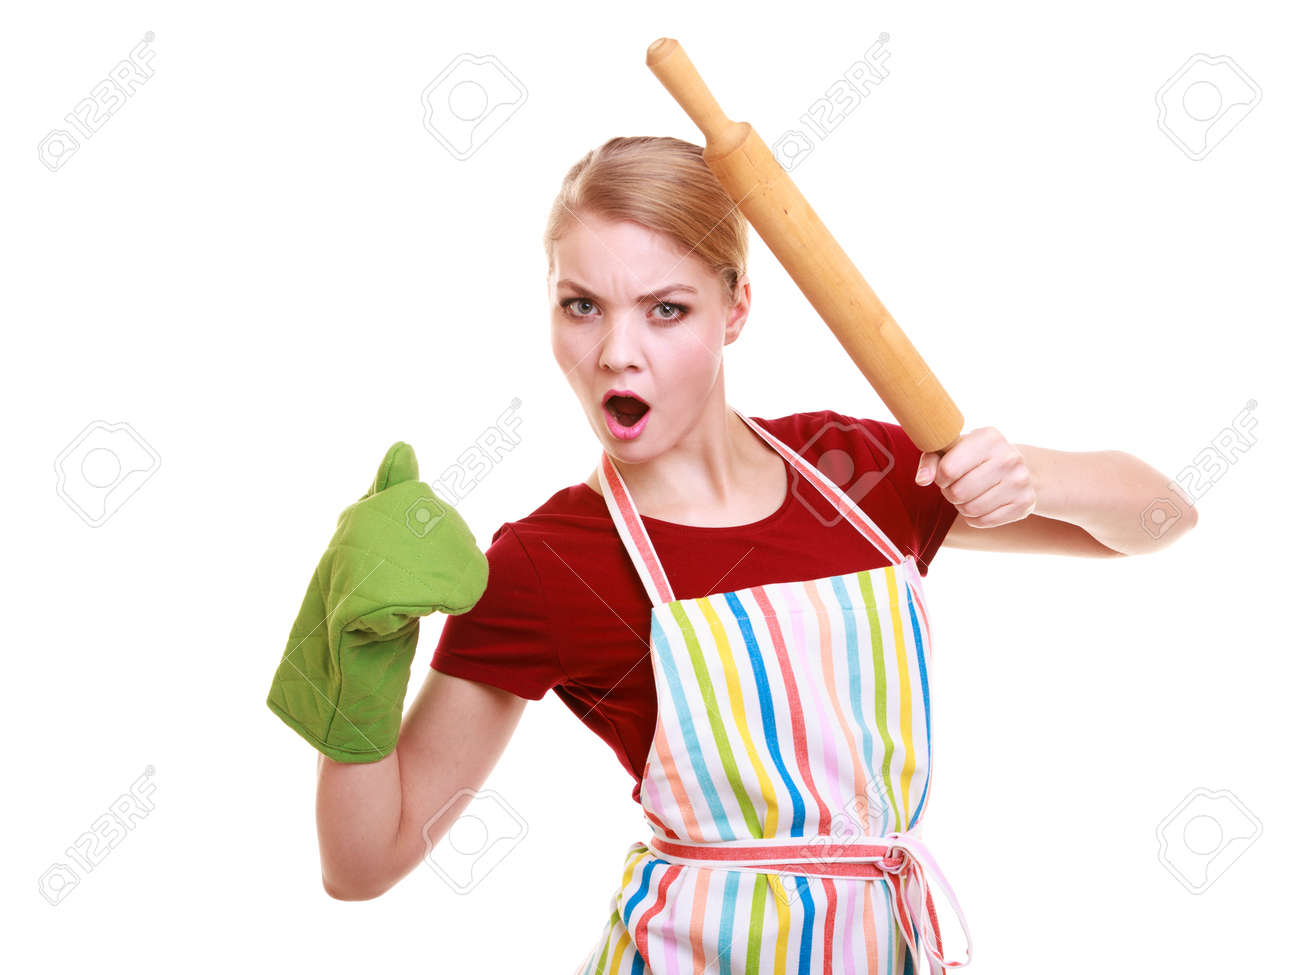 White apron green thumb - Funny Crazy Emotional Housewife Or Baker Chef Wearing Kitchen Apron Green Oven Mitten Holds Baking Rolling